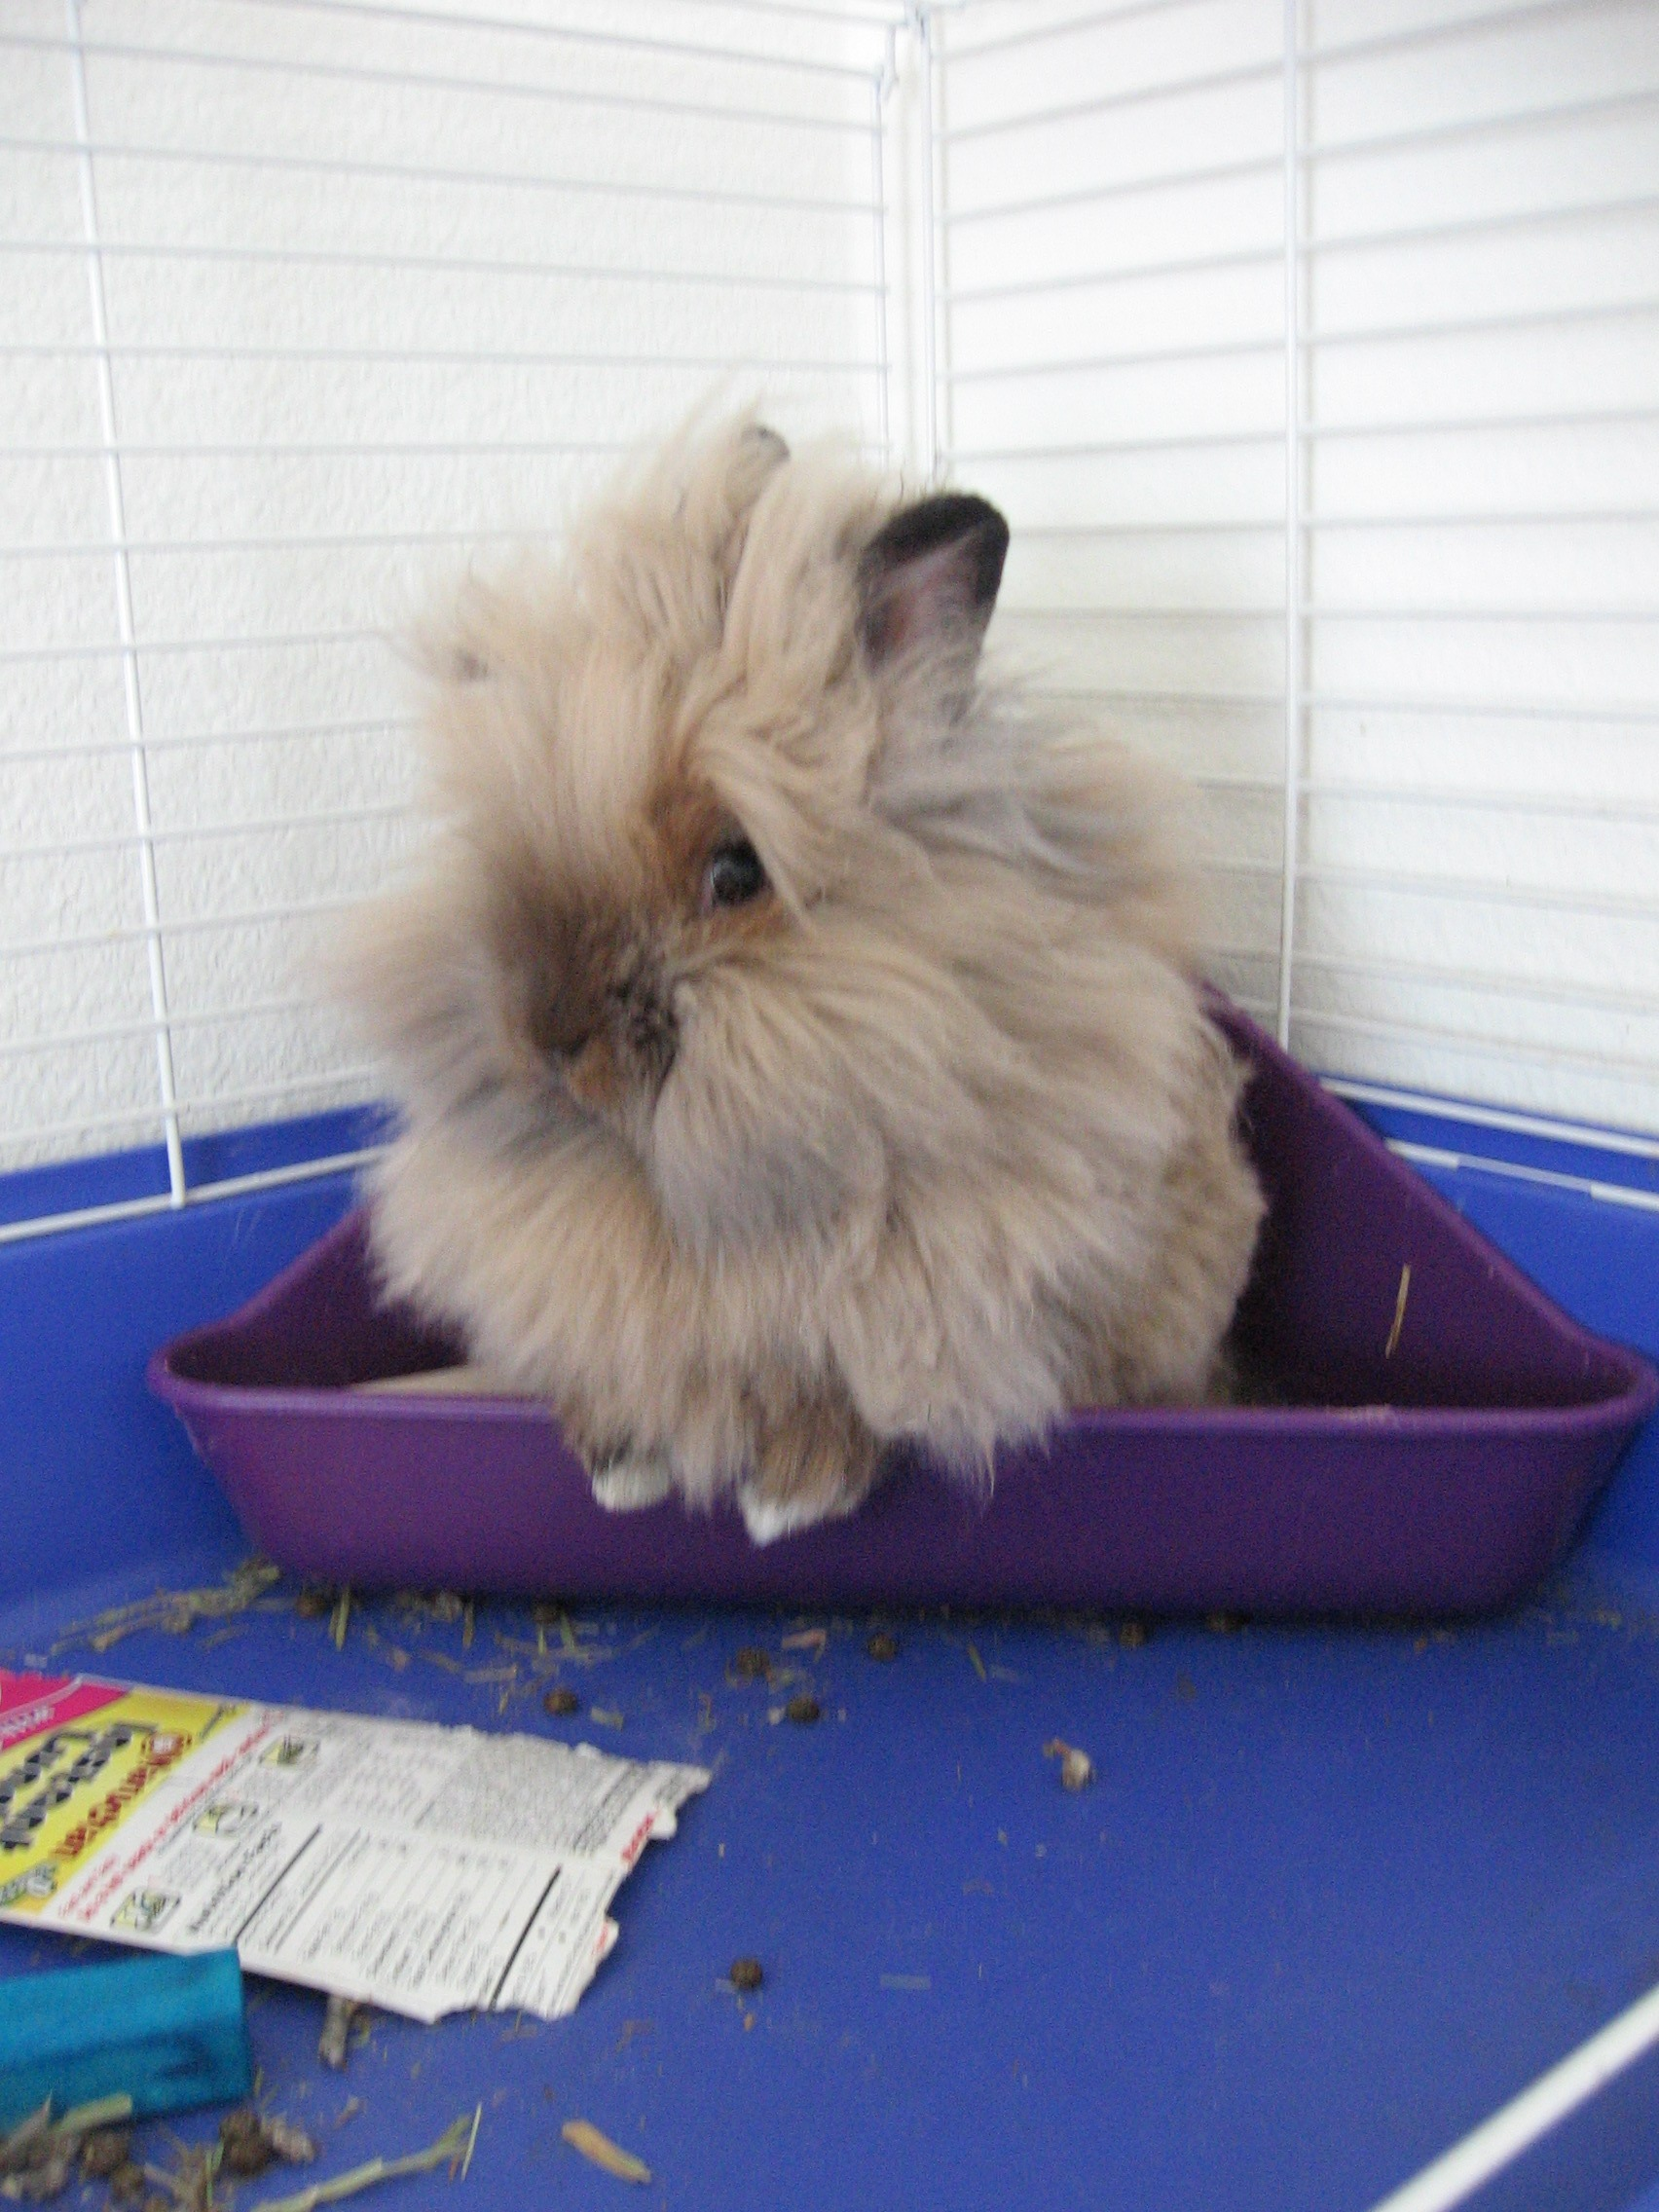 http://upload.wikimedia.org/wikipedia/commons/a/aa/Lionhead_rabbit.jpg